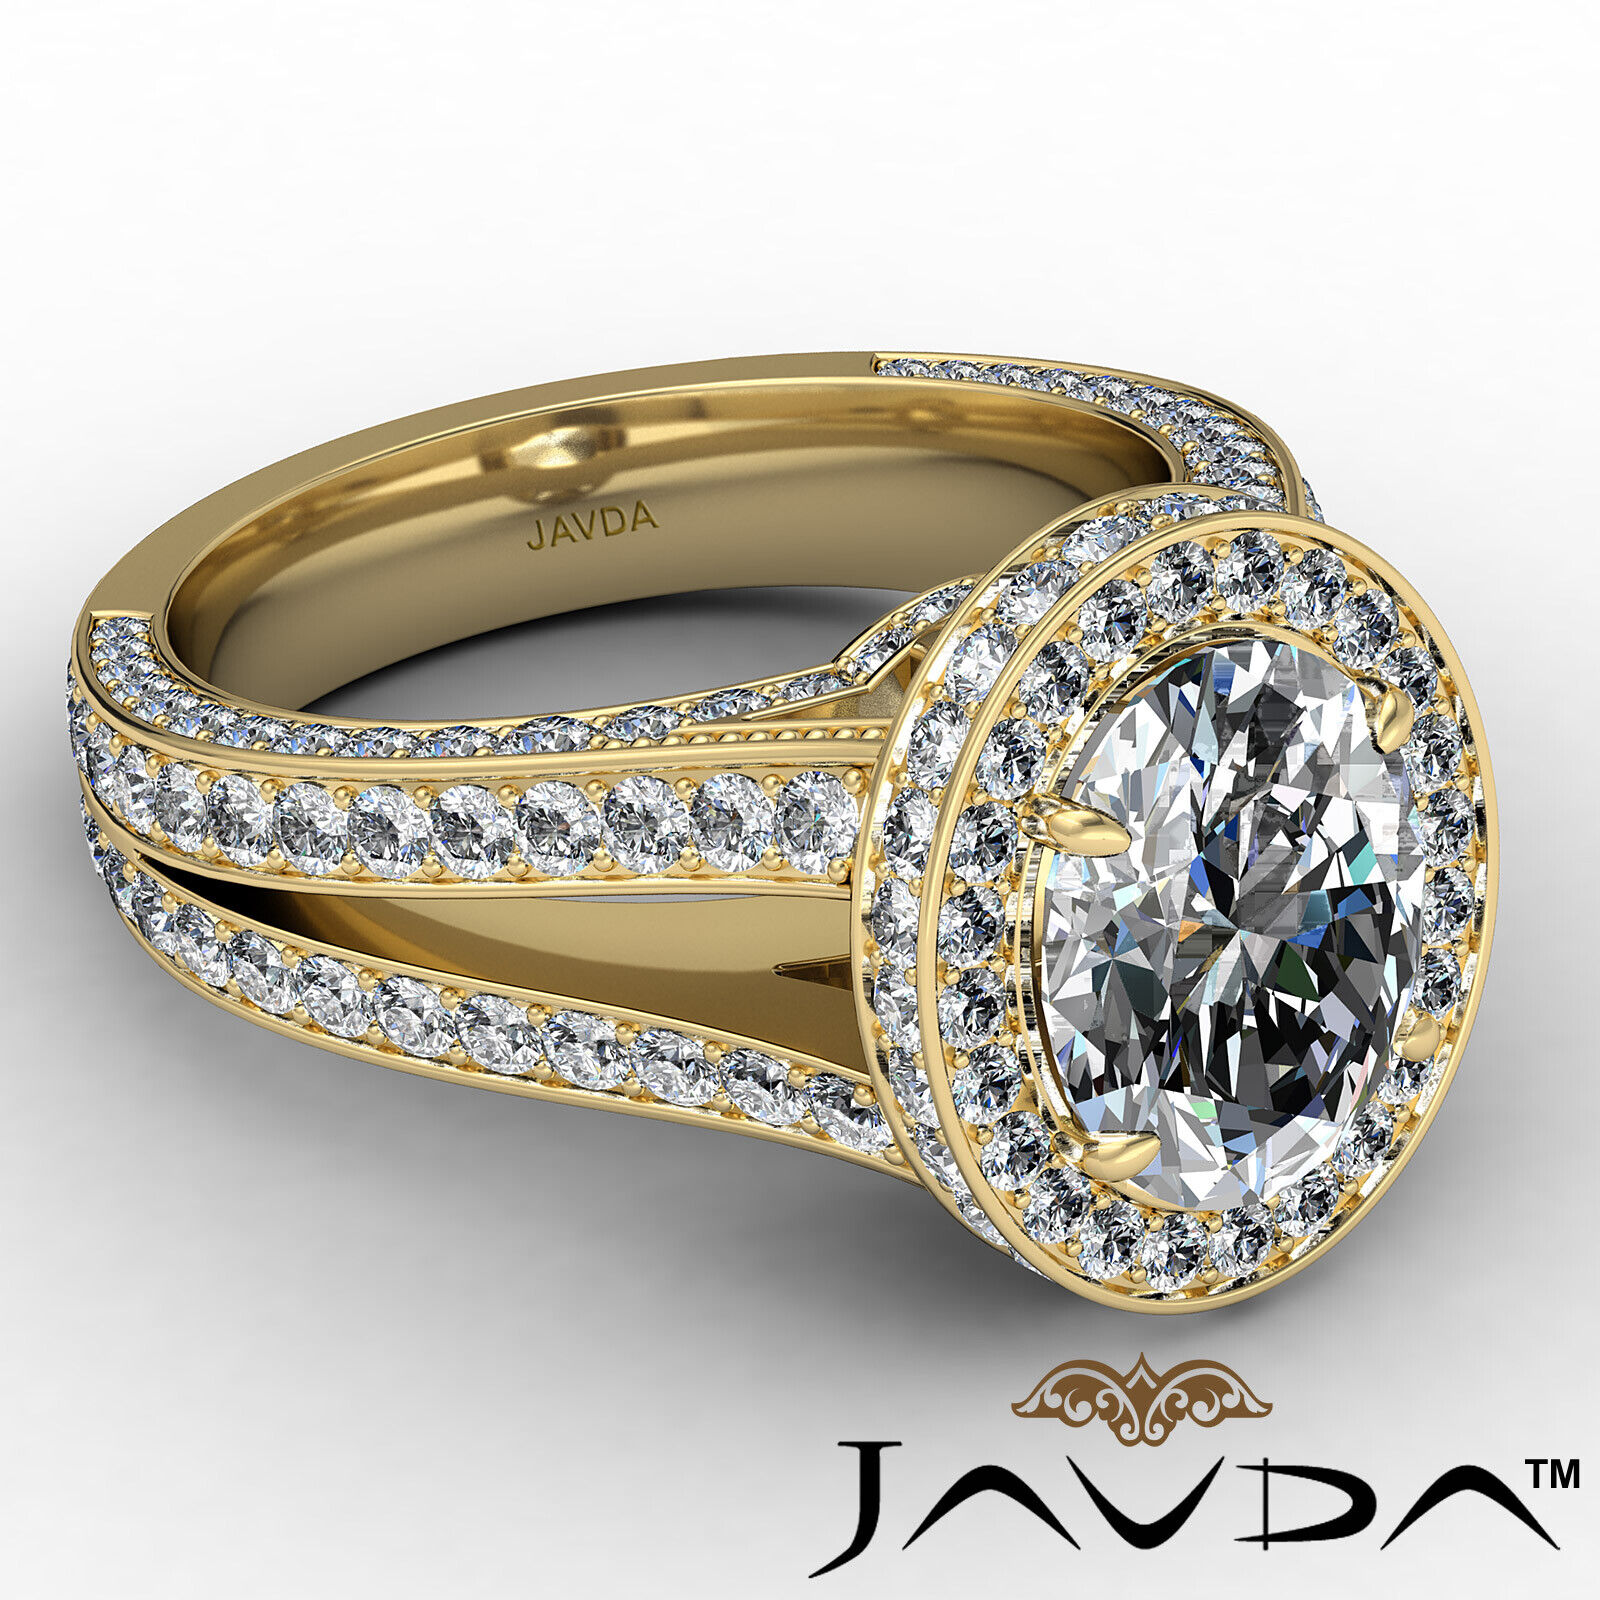 Halo Oval Diamond Engagement Ring GIA Certified F Color & SI1 clarity 2.31 ctw 7